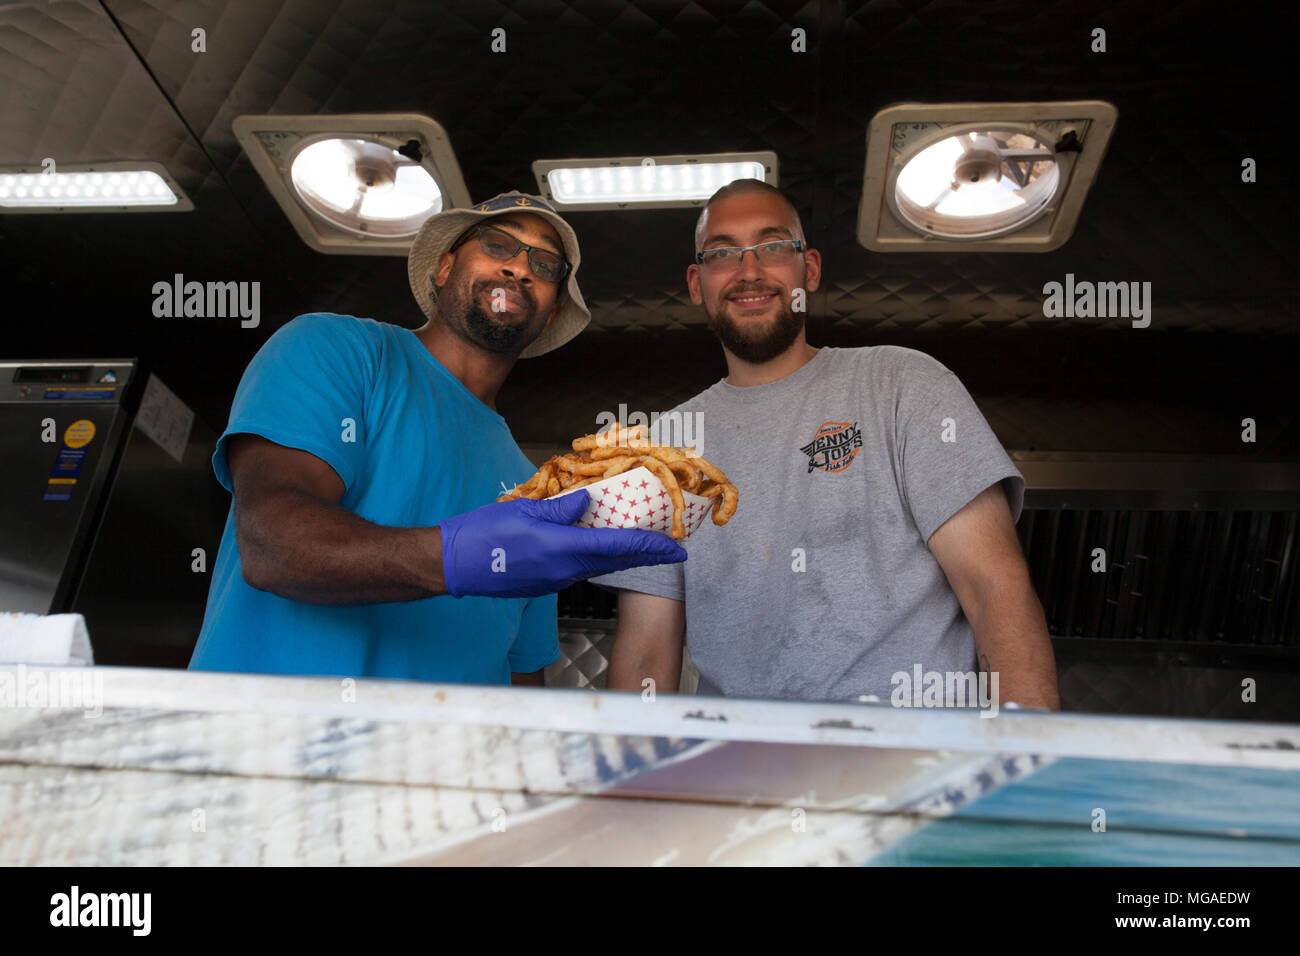 African-American and Caucasian small business owners in their food truck with a basketful of fried onion rings - Stock Image